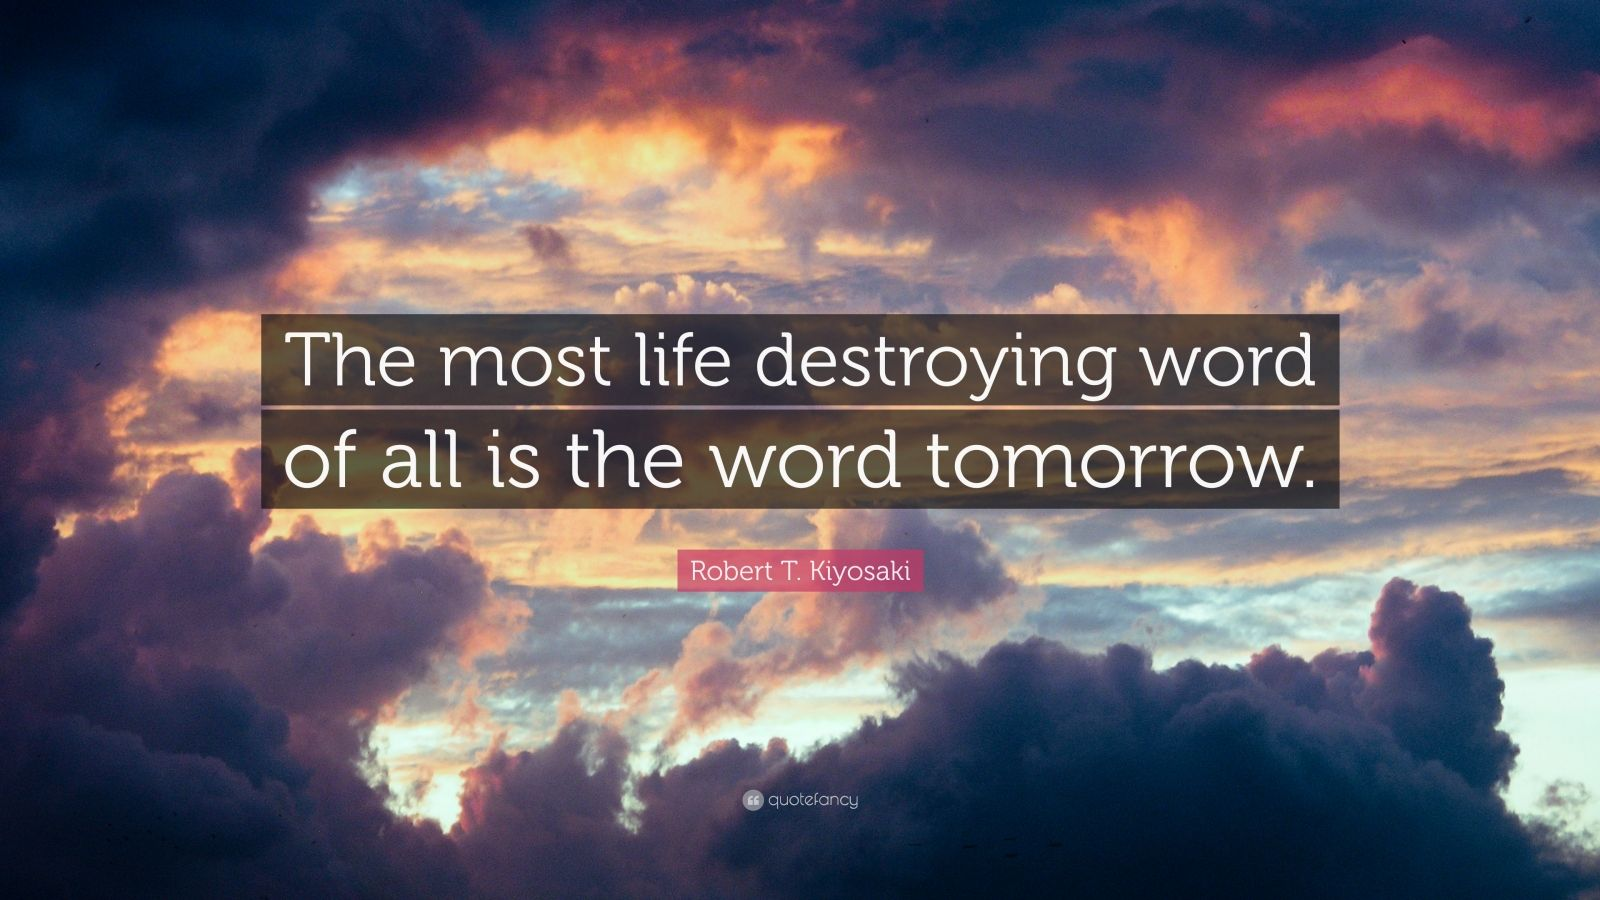 """Robert T. Kiyosaki Quote: """"The most life destroying word of all is the word tomorrow."""""""